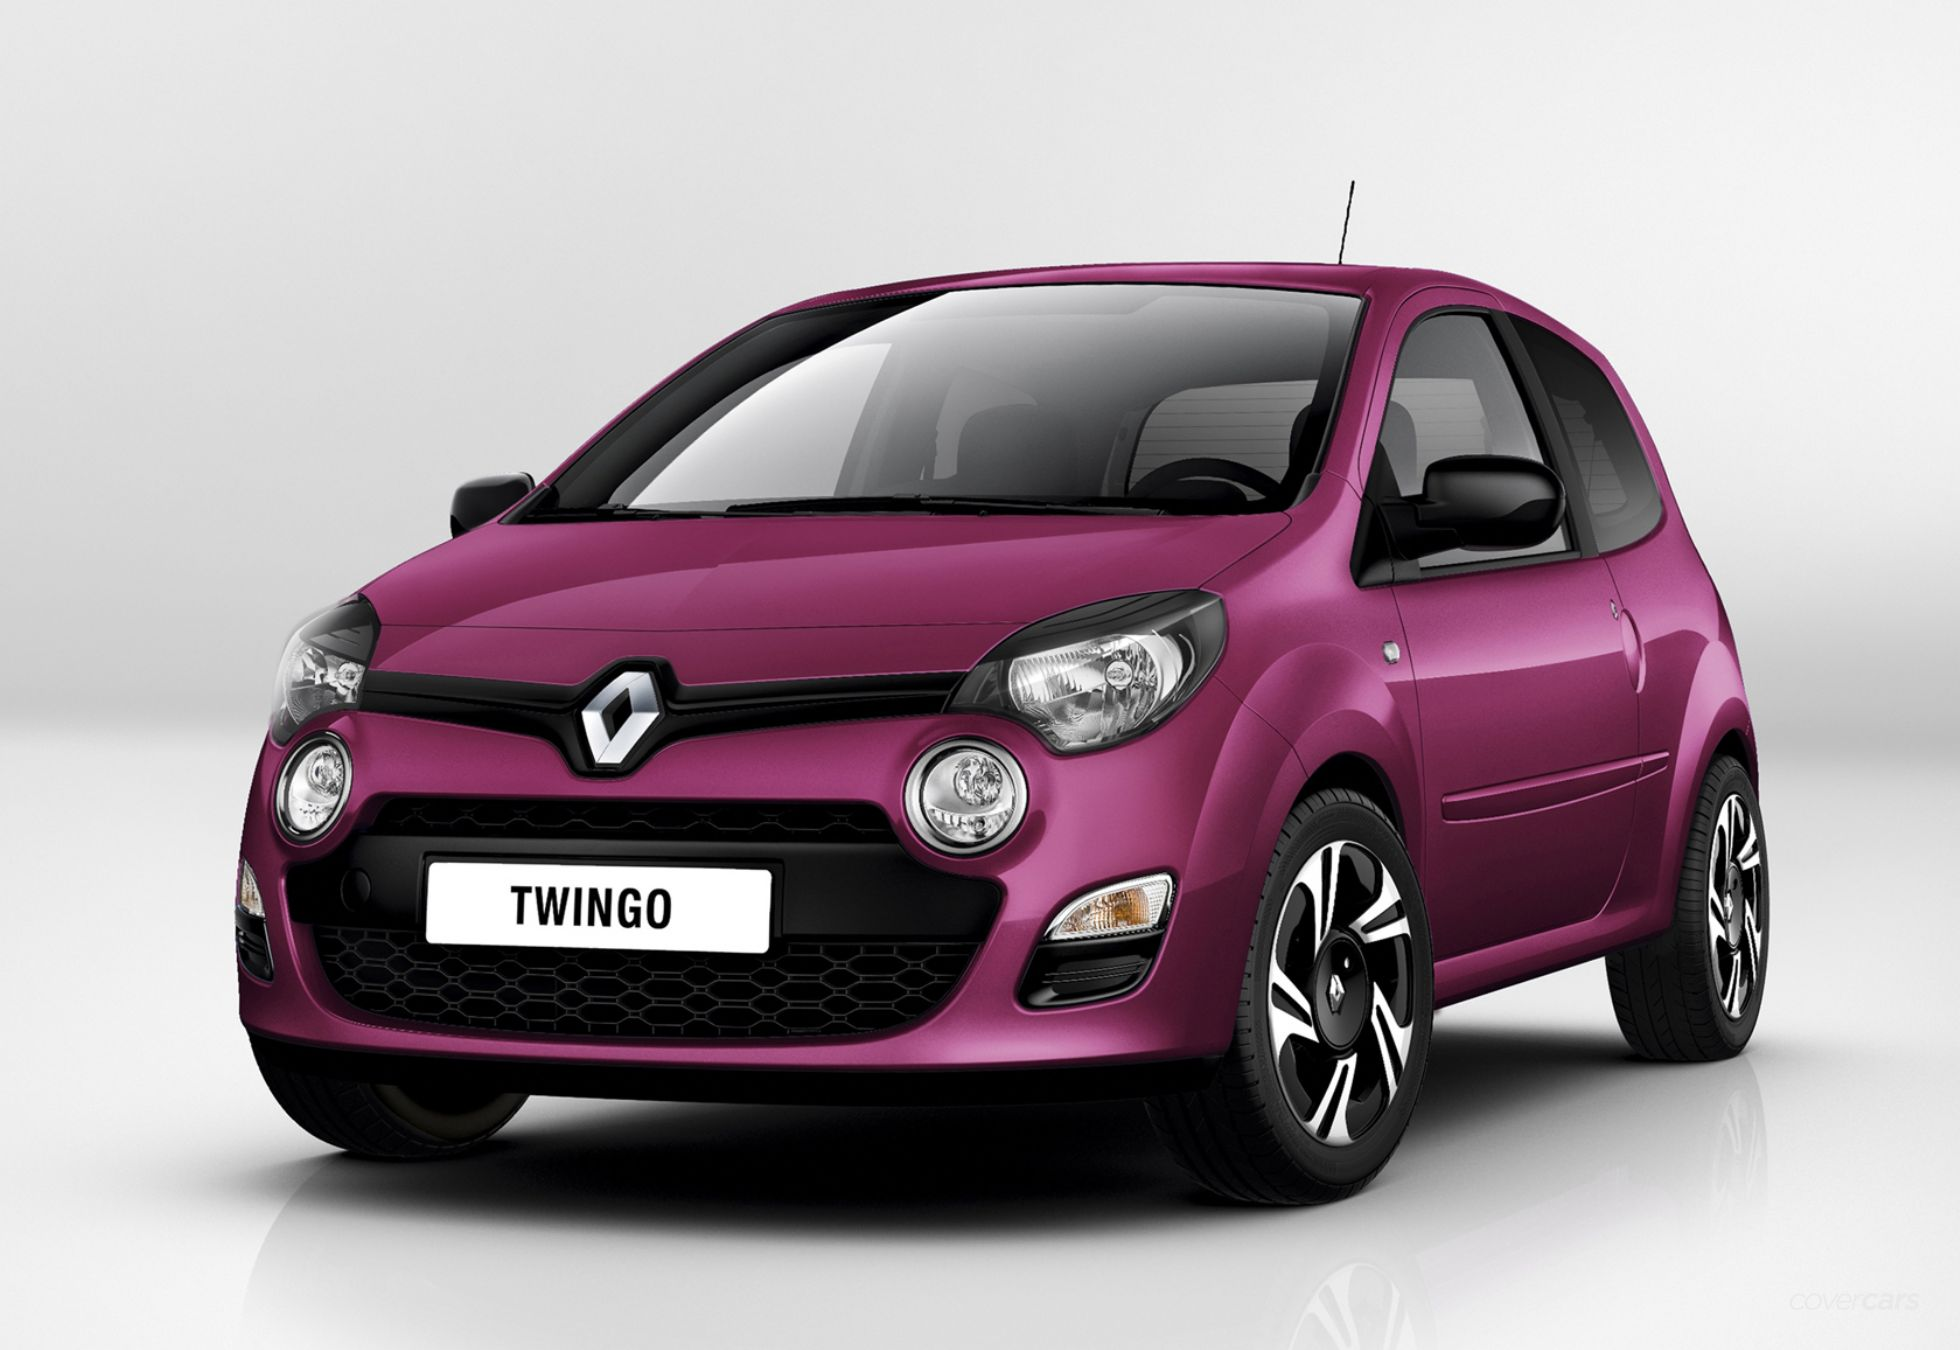 renault twingo renault photo 24225214 fanpop. Black Bedroom Furniture Sets. Home Design Ideas